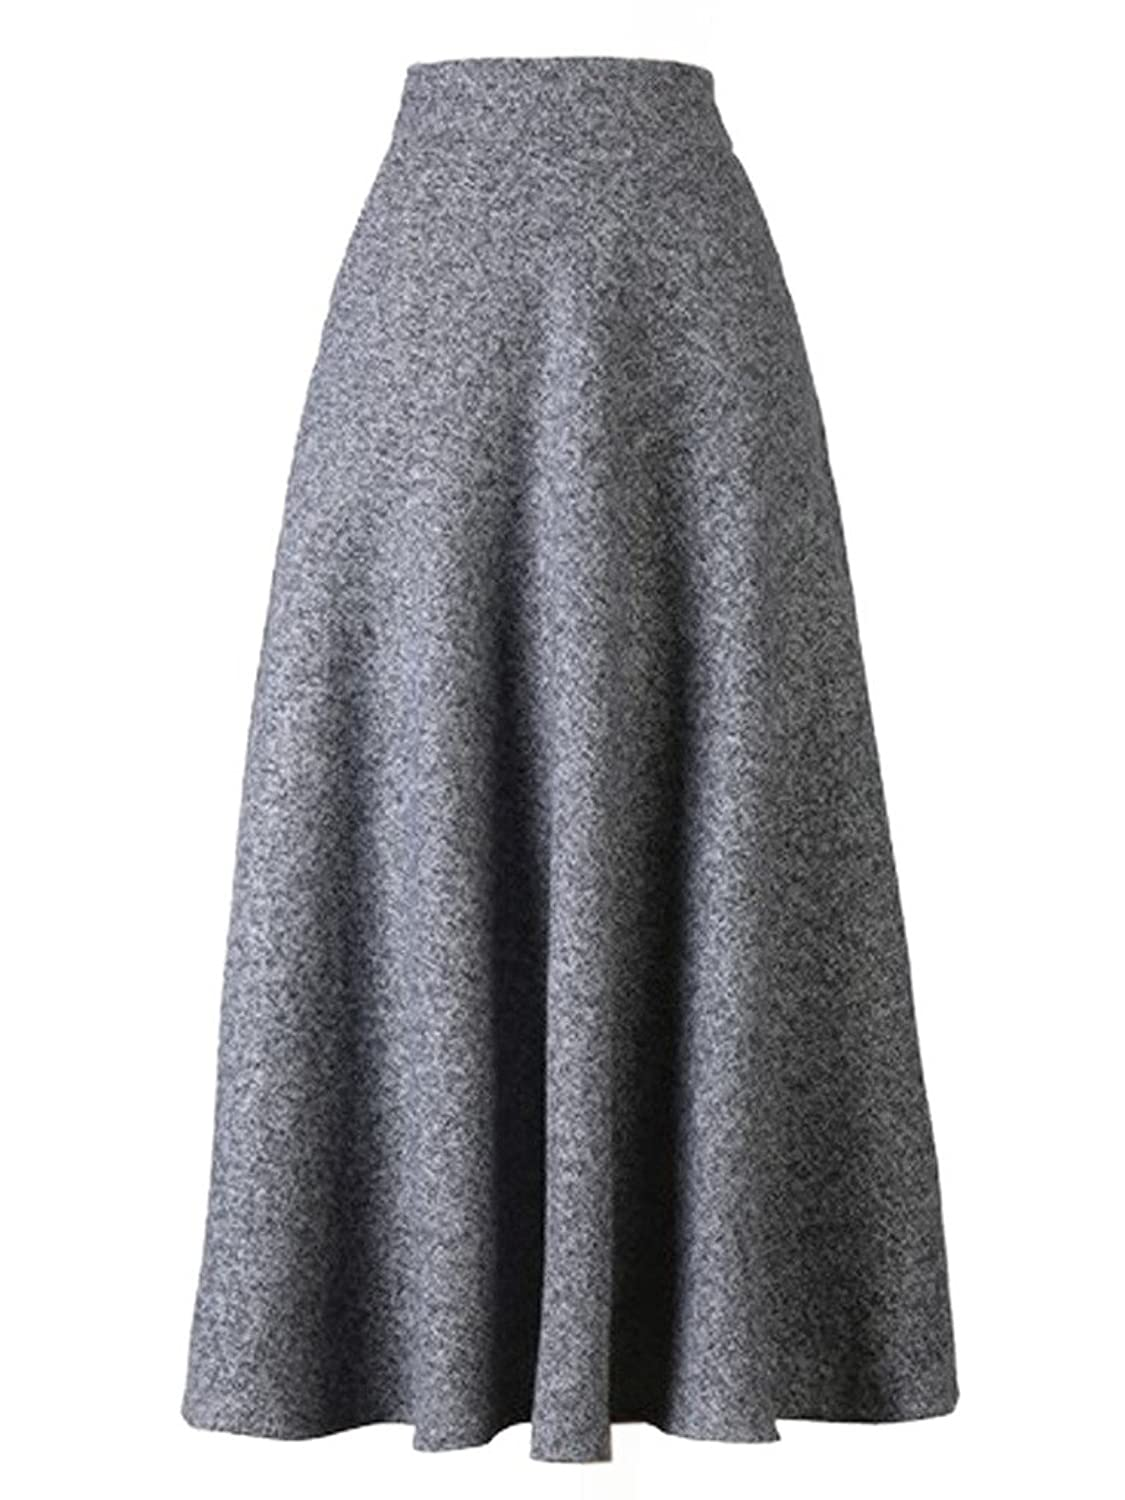 Retro Skirts: Vintage, Pencil, Circle, & Plus Sizes Choies Womens High Waist A-line Flared Long Skirt Winter Fall Midi Skirt $33.99 AT vintagedancer.com